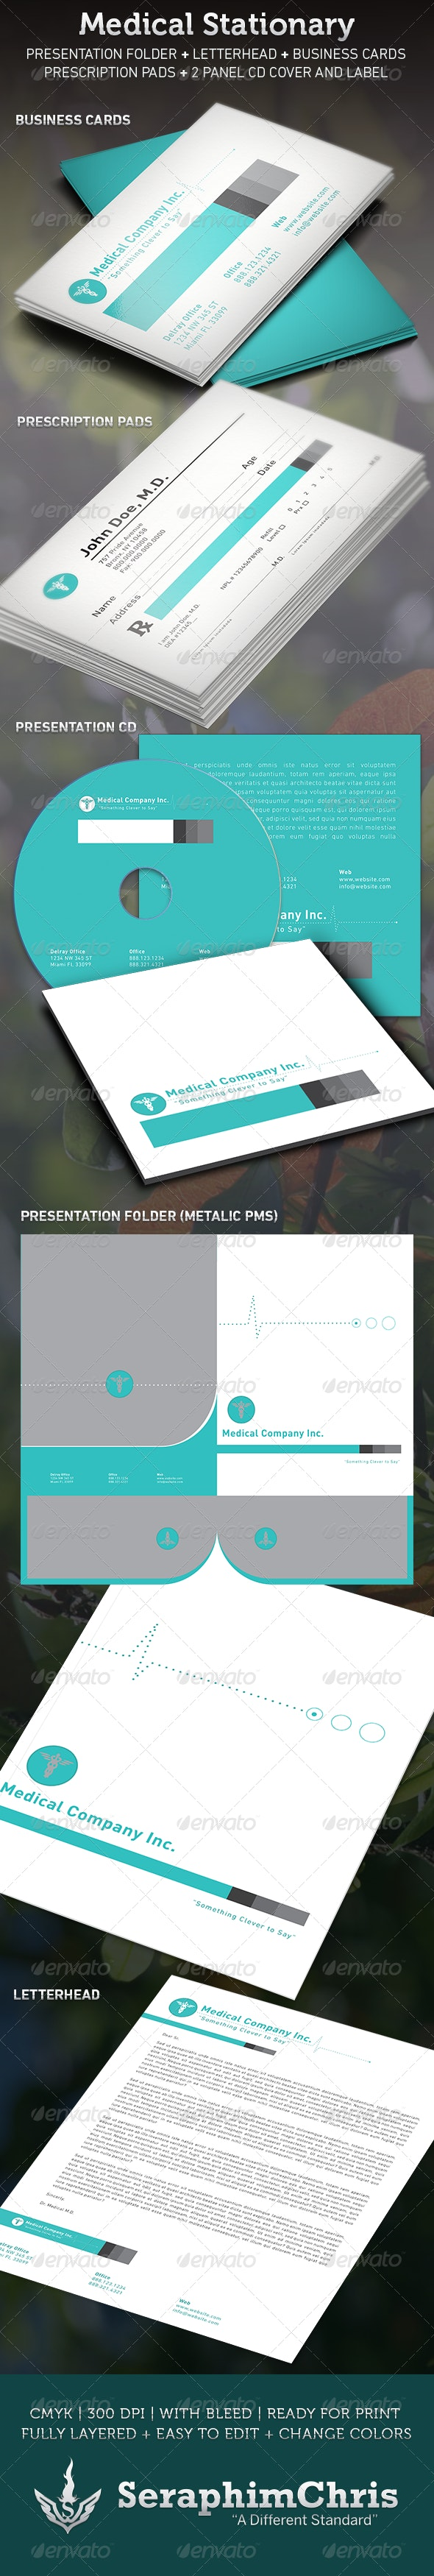 Medical Stationary Template - Stationery Print Templates